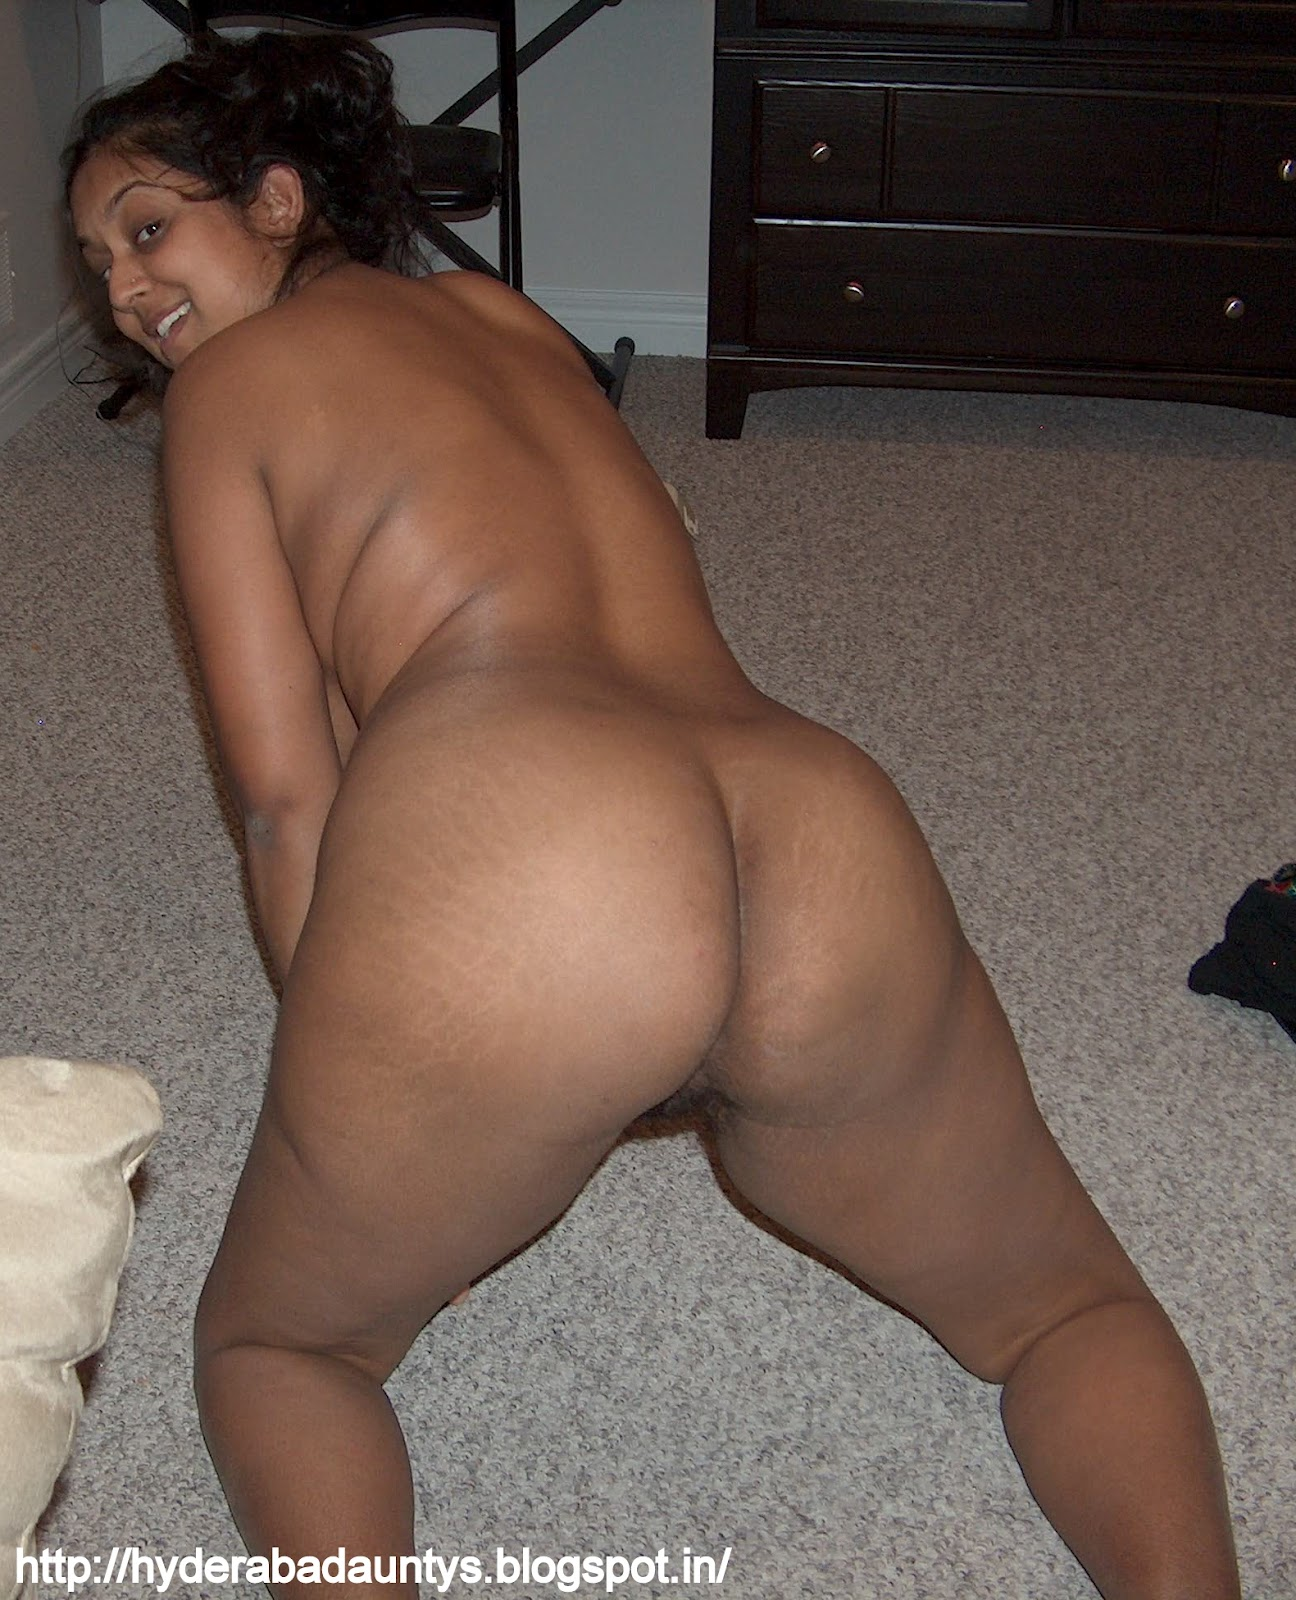 Mallu aunty Revathi showing her big ass hole nude pictures